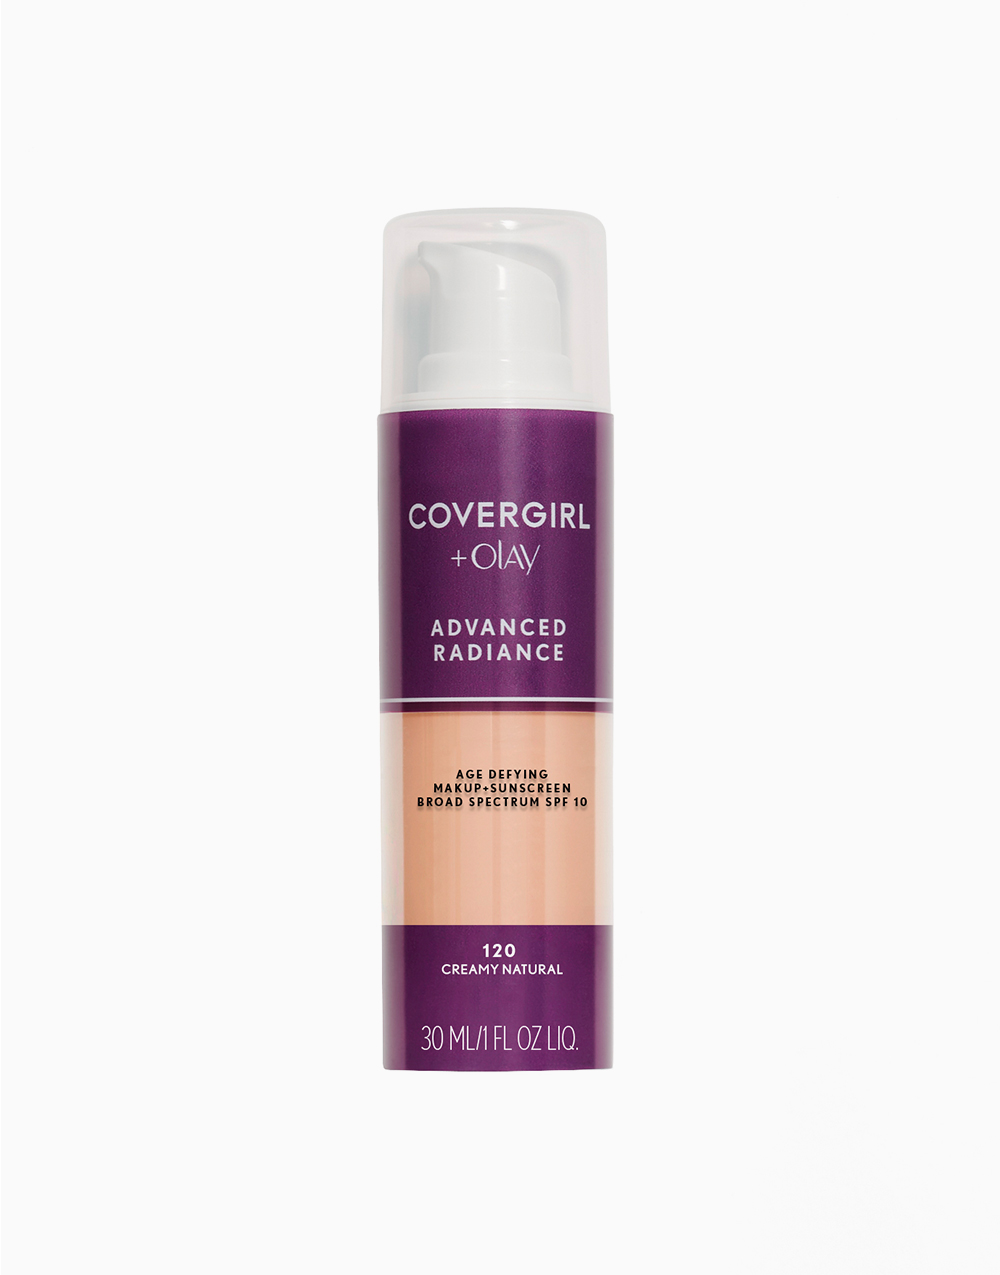 Advanced Radiance Age-Defying Liquid Makeup by CoverGirl | Creamy Natural